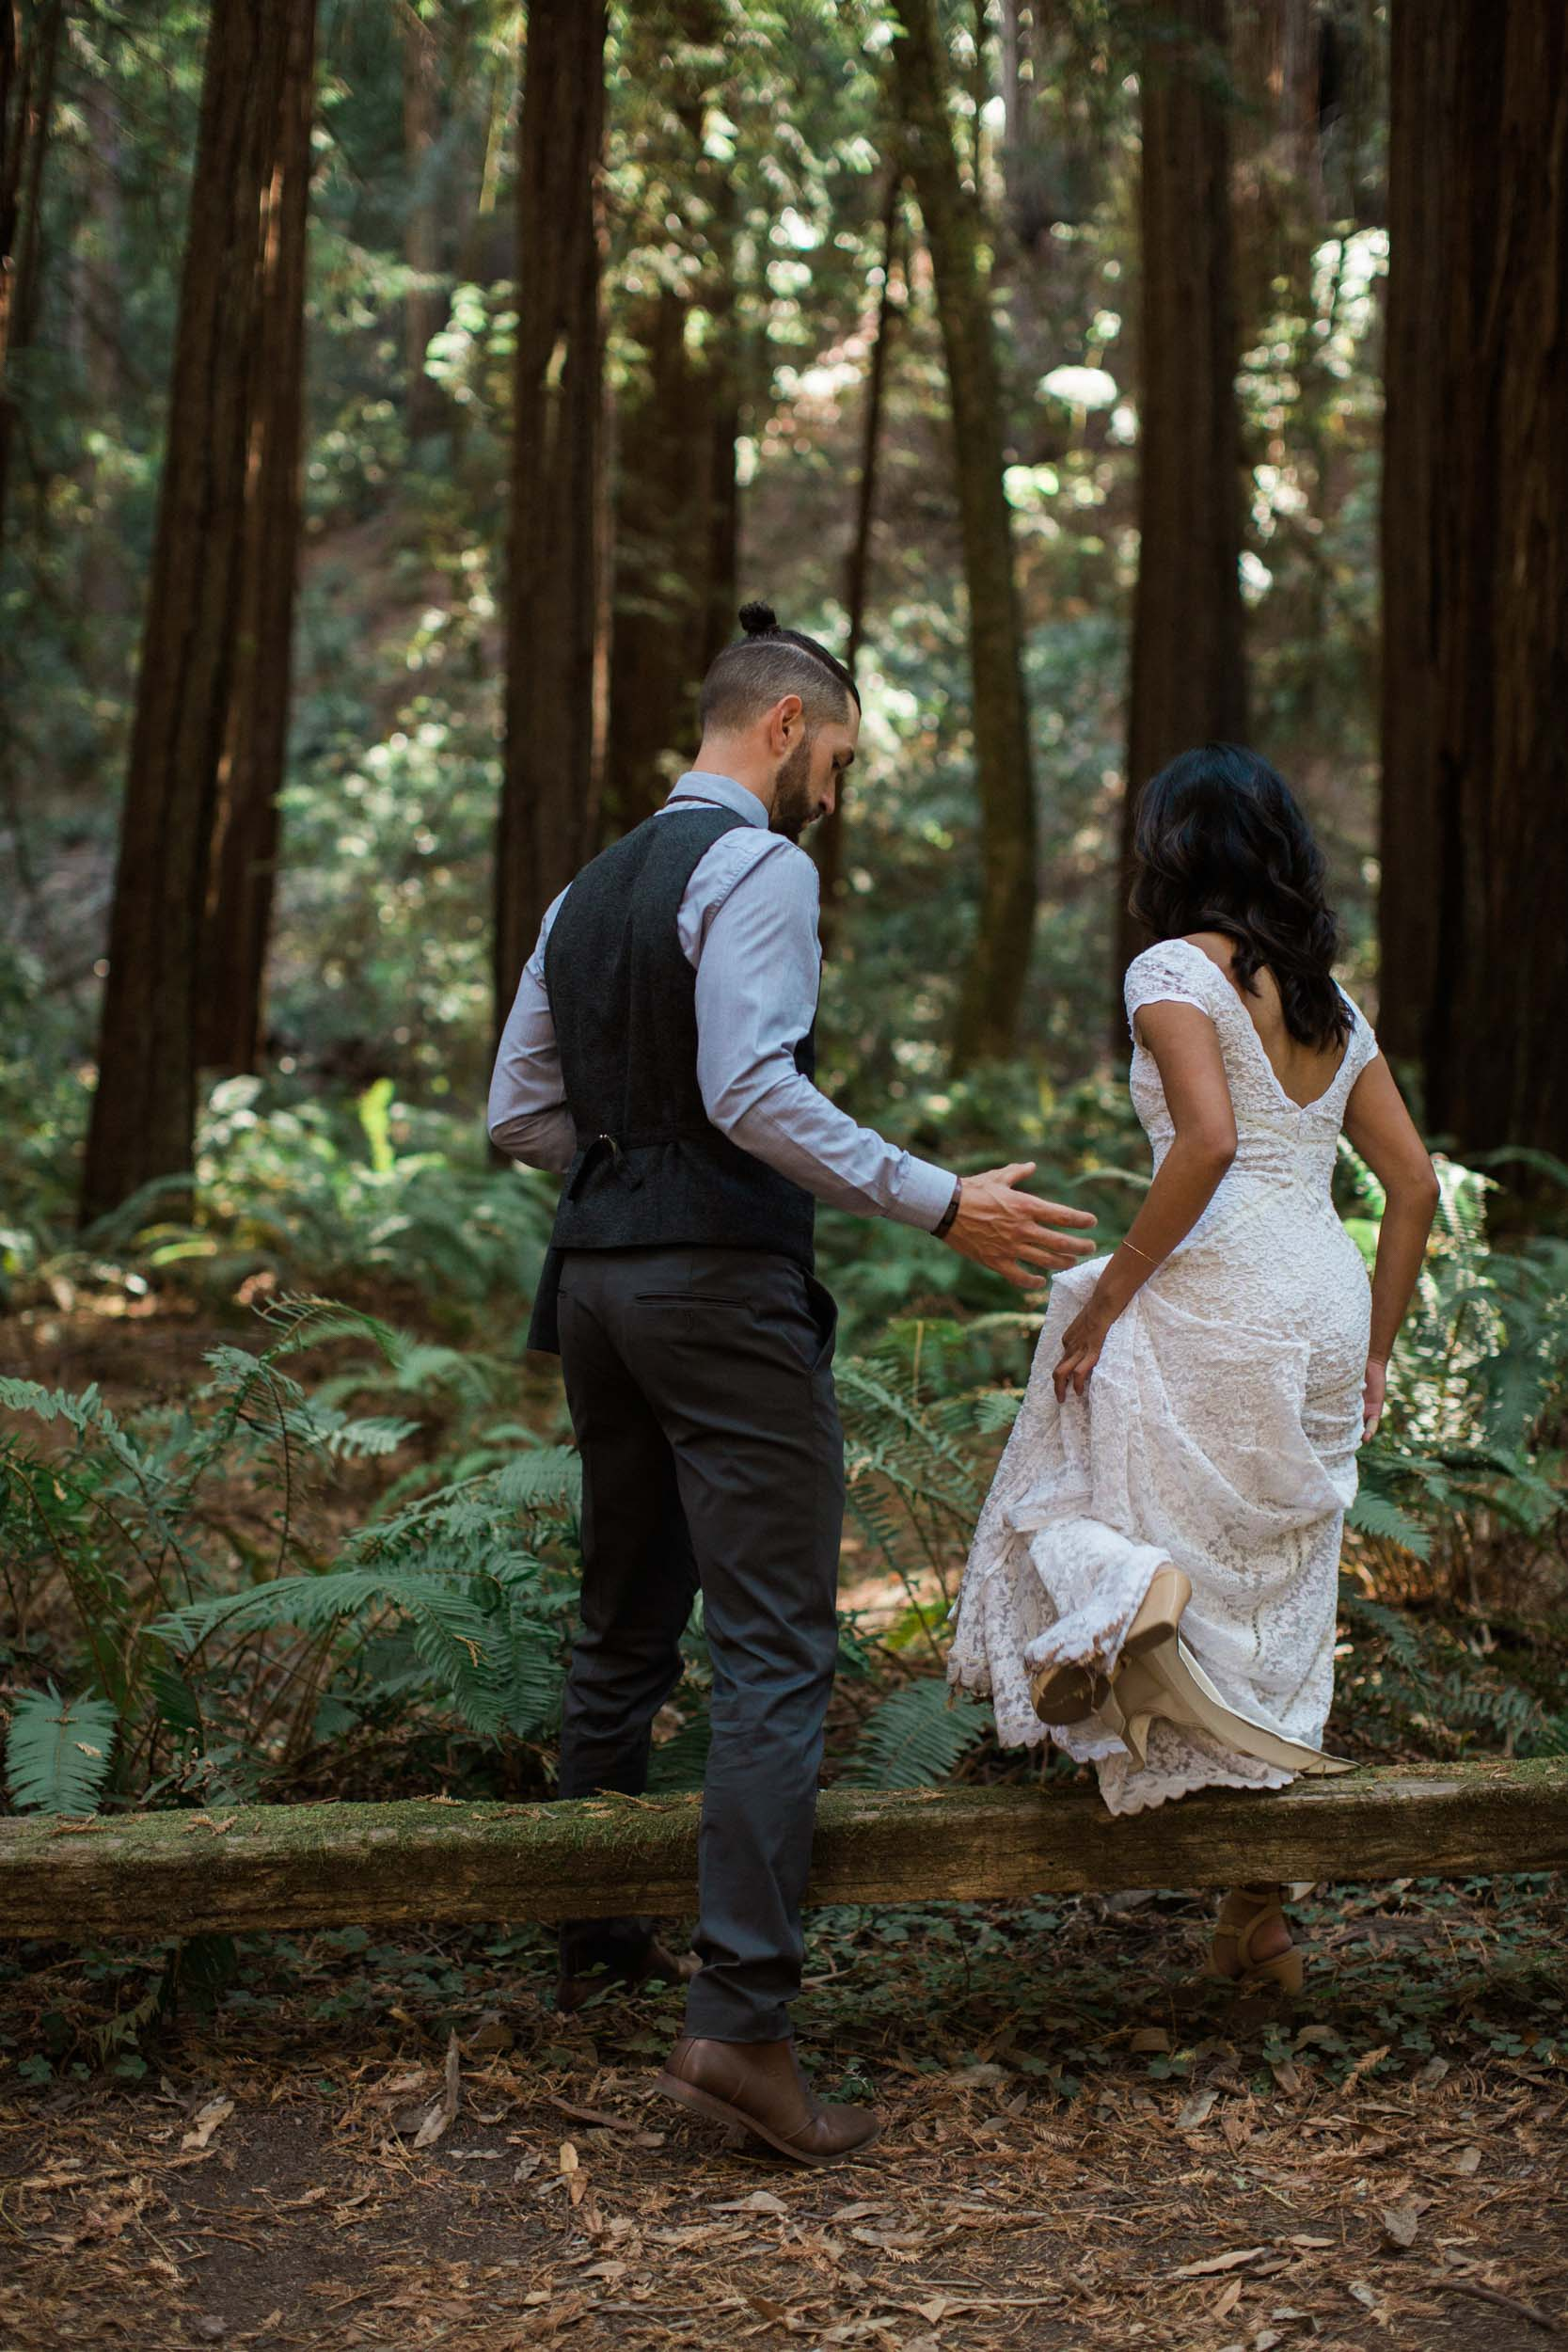 BKM-Photography-Russian-River-Wedding-Redwoods-Guerneville-California-Destination-Wedding-Photographer-0013.jpg